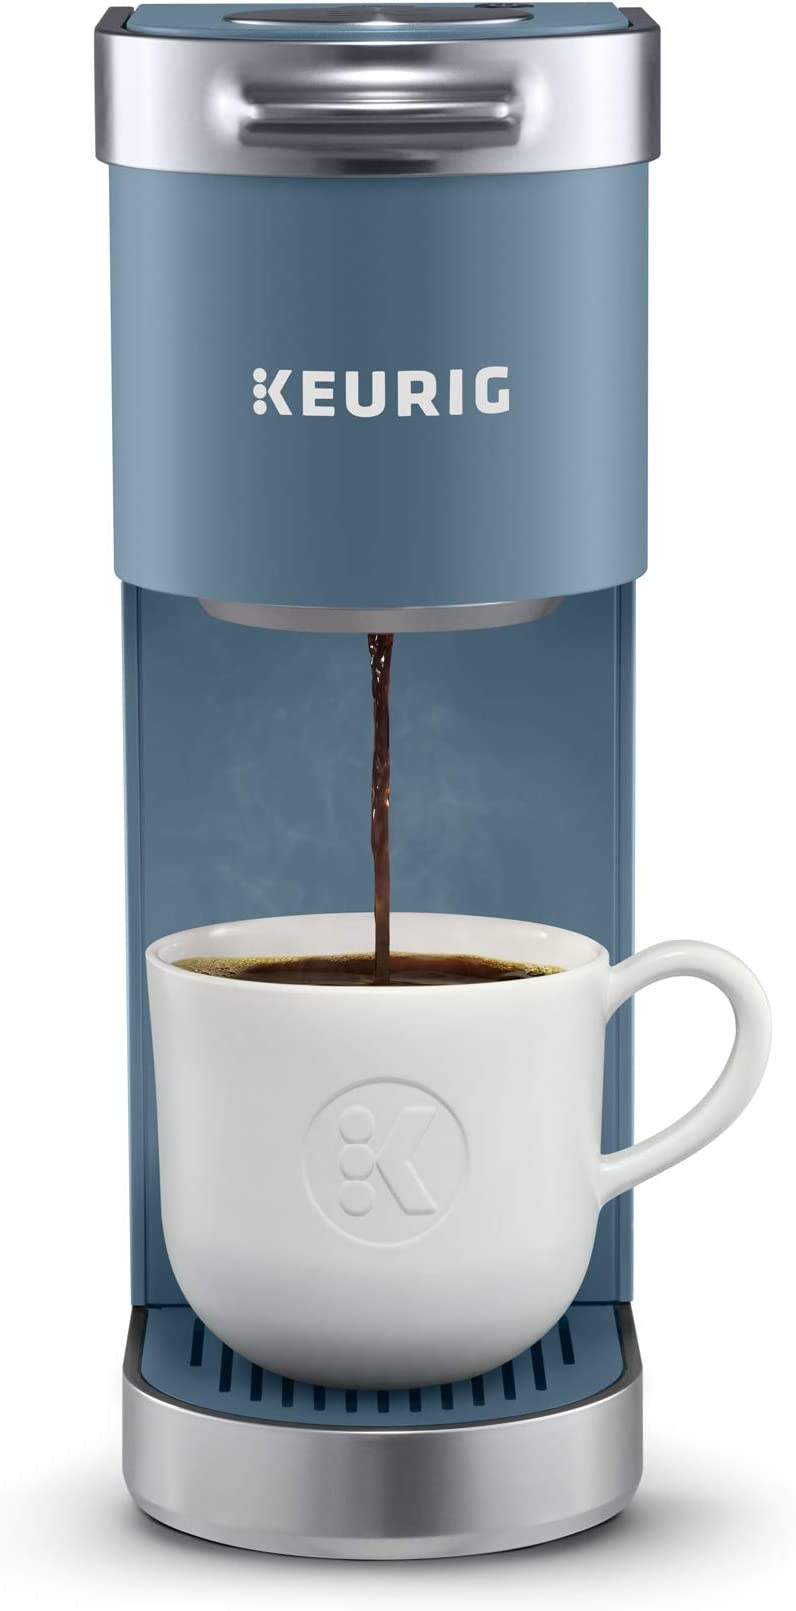 Keurig K-Mini Plus Coffee Maker, Single Serve K-Cup Pod Coffee Brewer, Comes With 6 to12 Oz Brew Size, K-Cup Pod Storage, and Travel Mug Friendly, Evening Teal